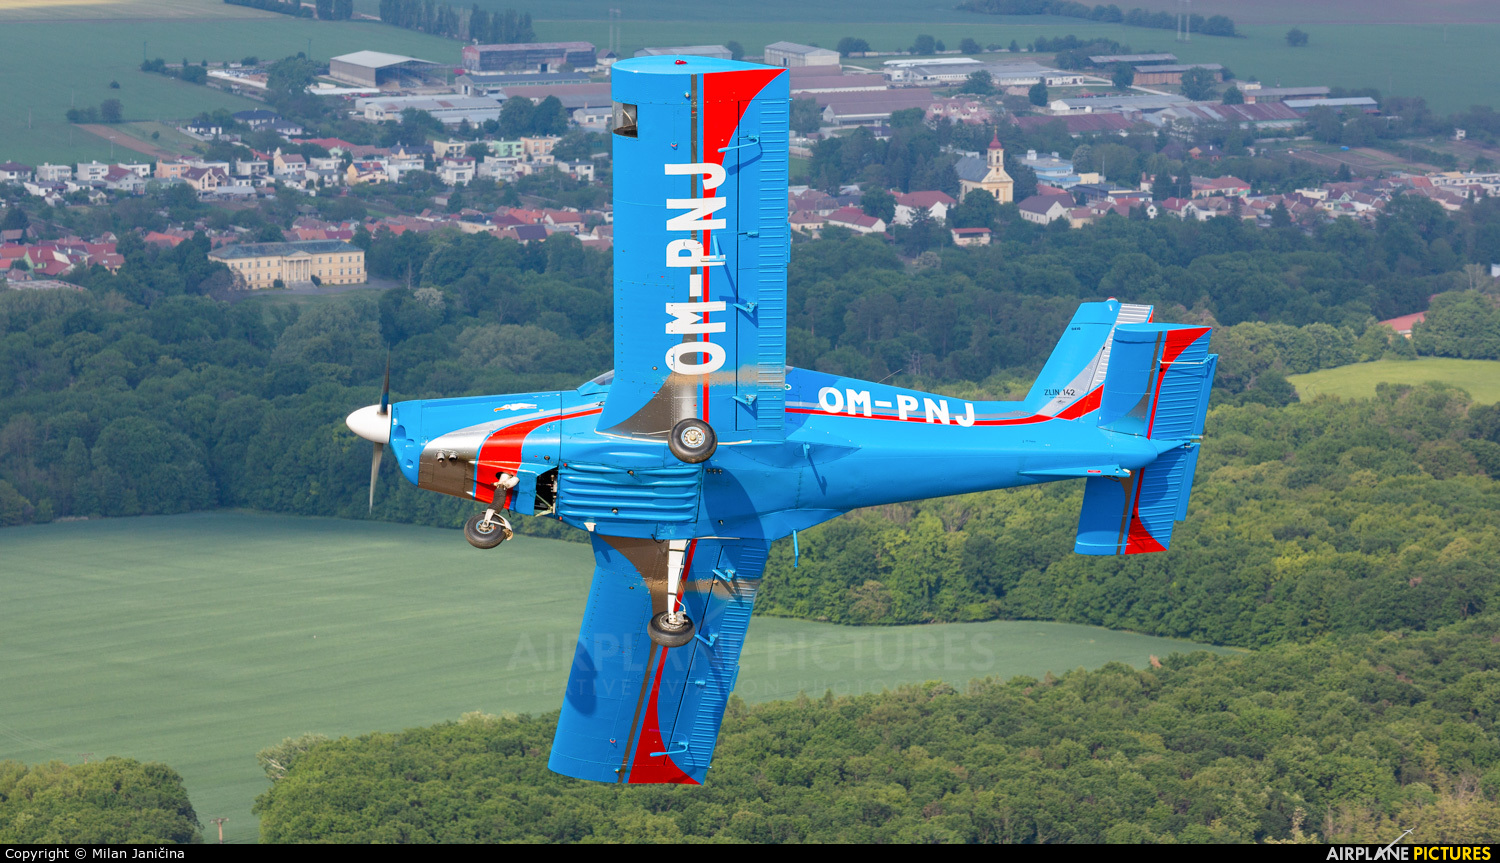 Private OM-PNJ aircraft at In Flight - Slovakia